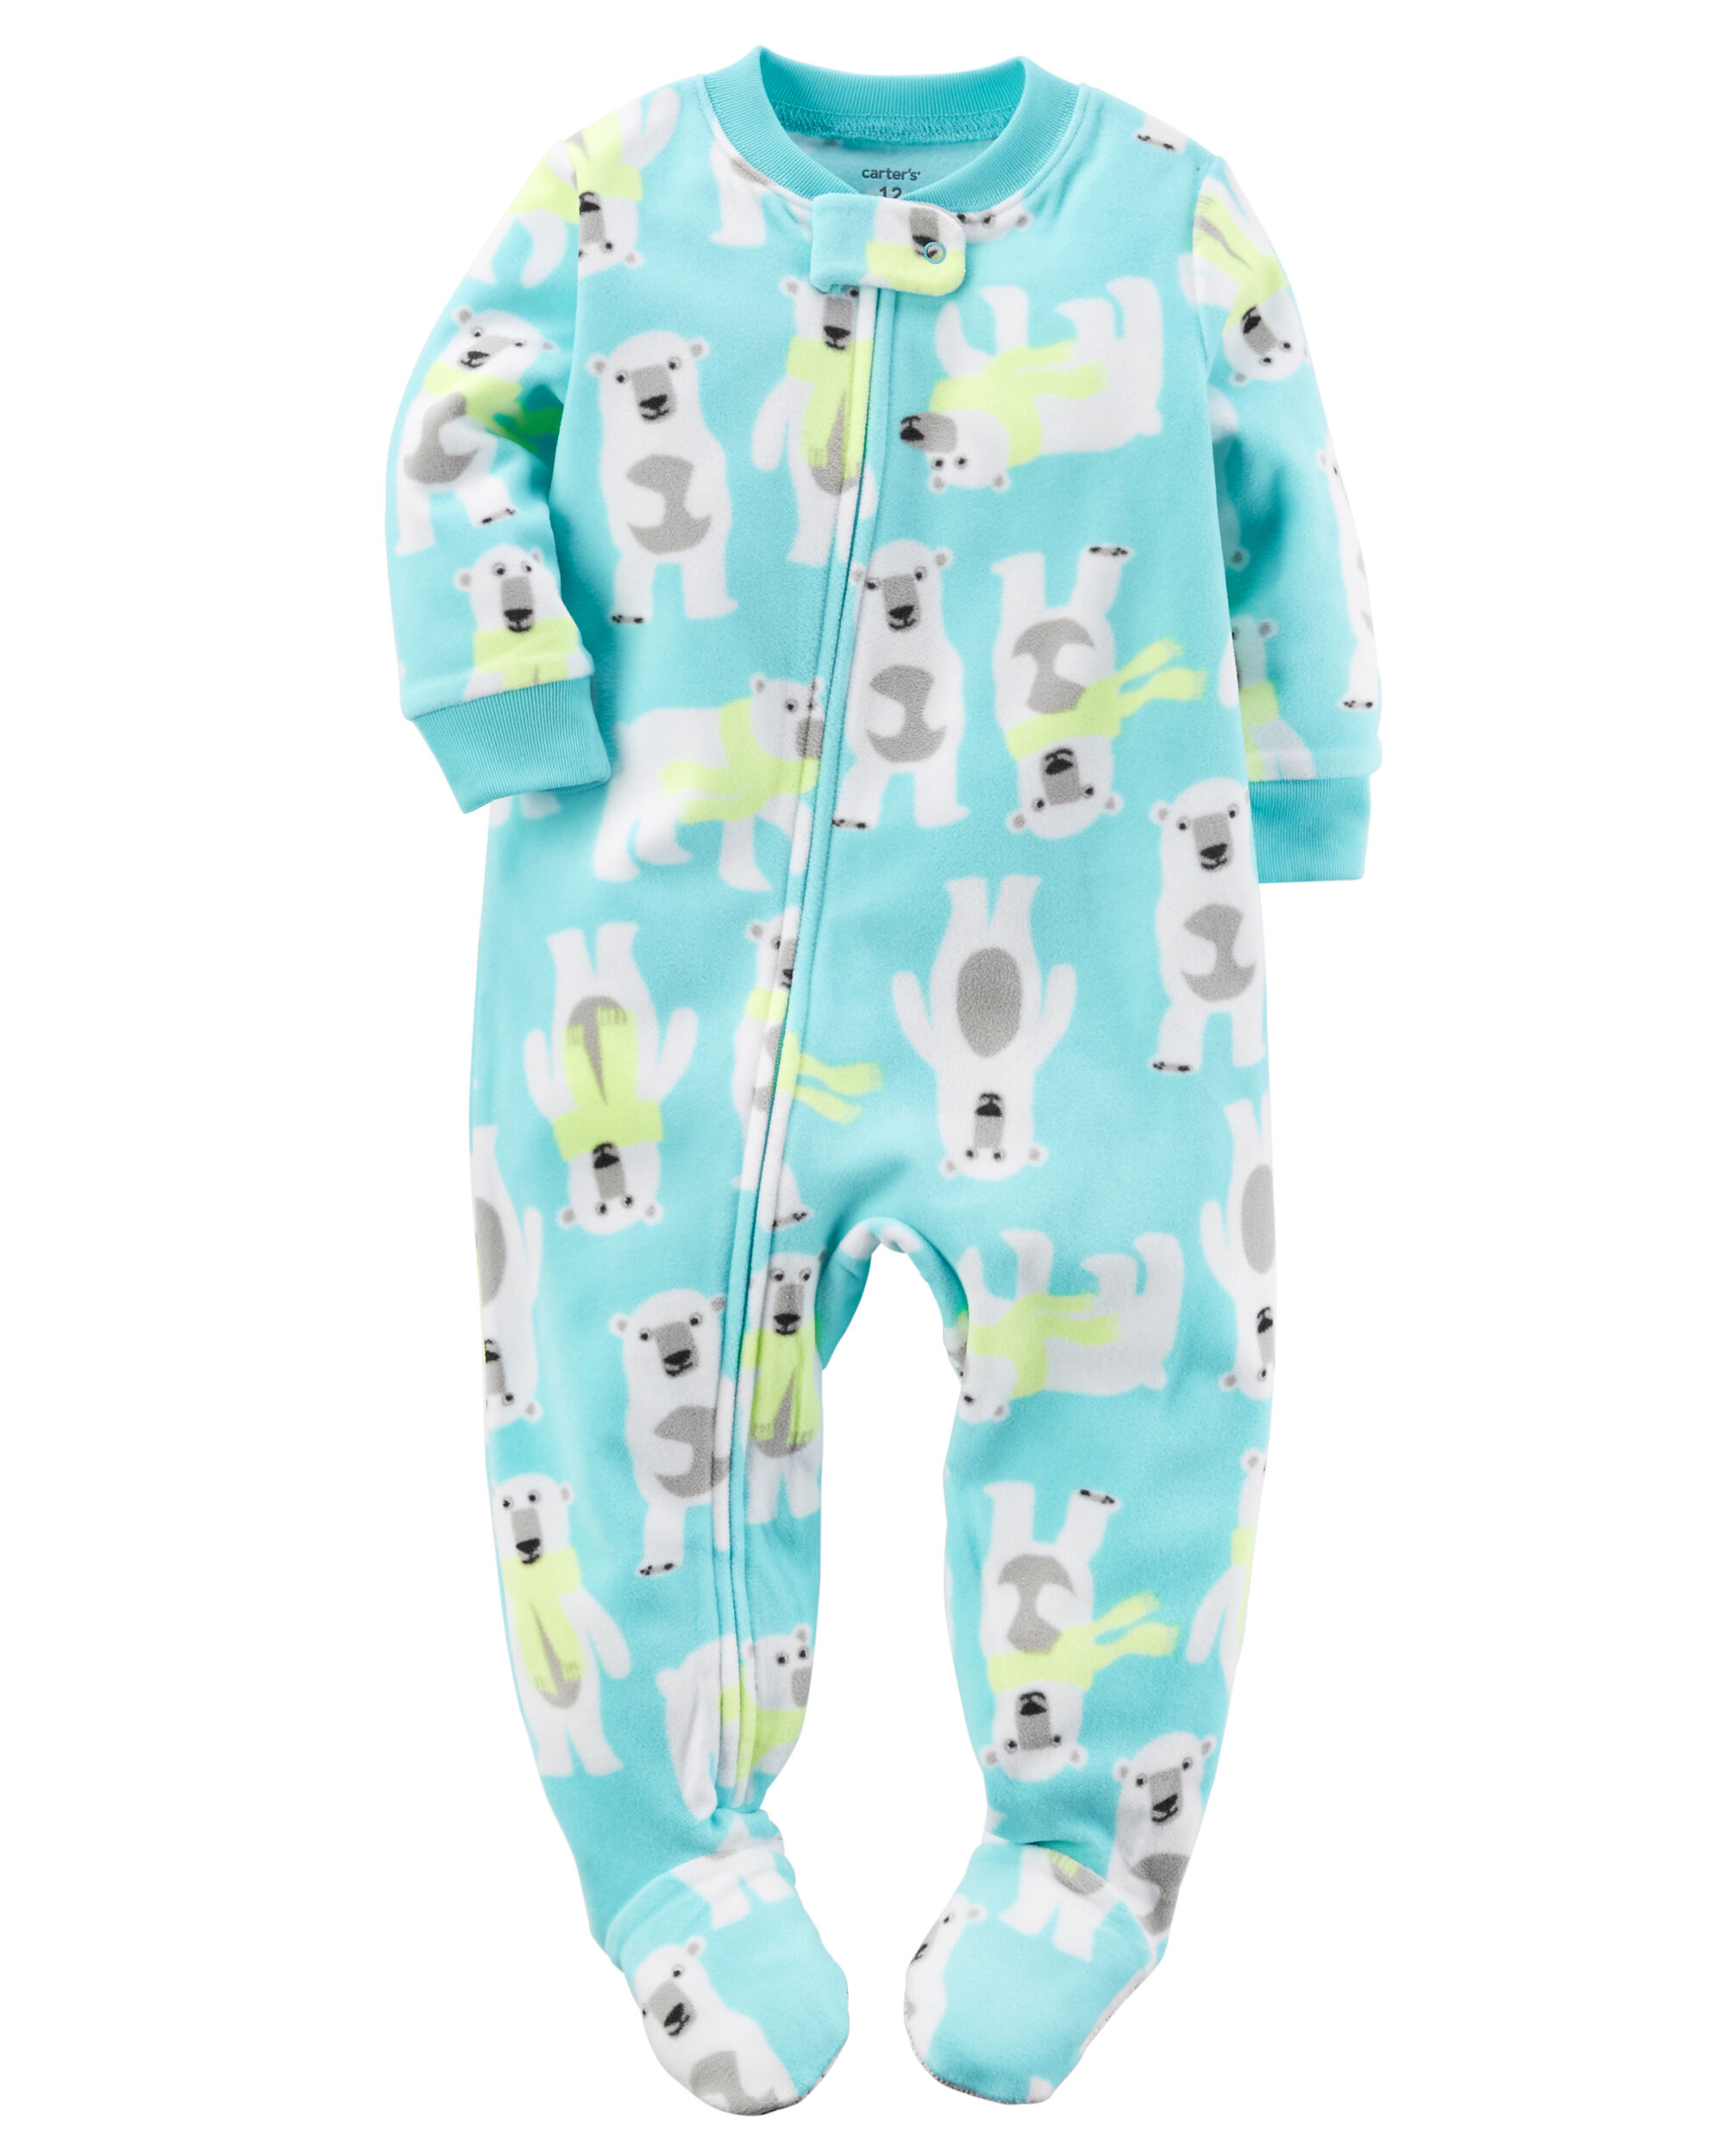 Fleece baby boy pajamas